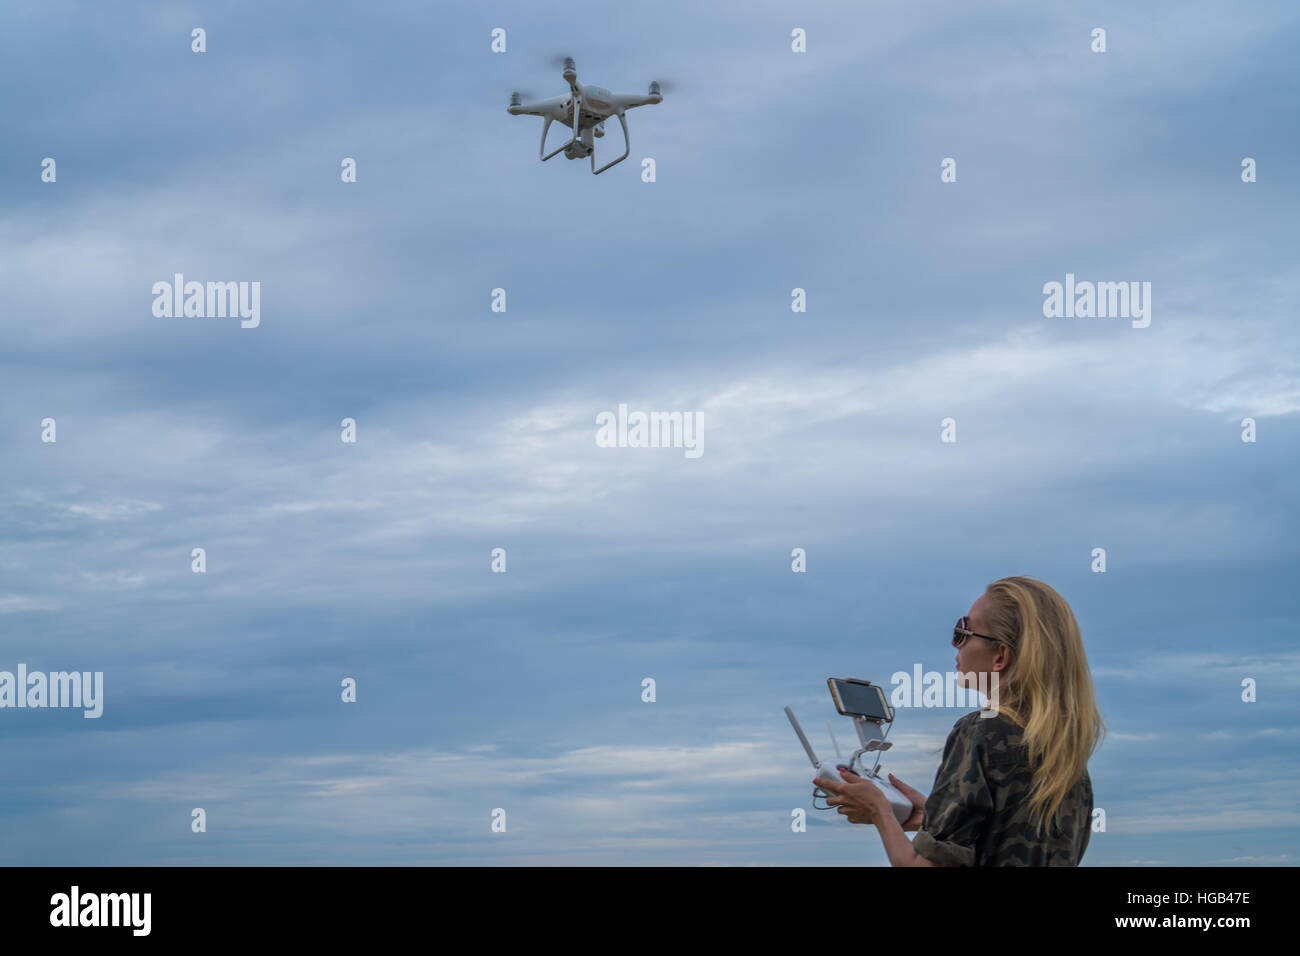 Happy woman standing with remote controller of drone over cloudy sky background - Stock Image